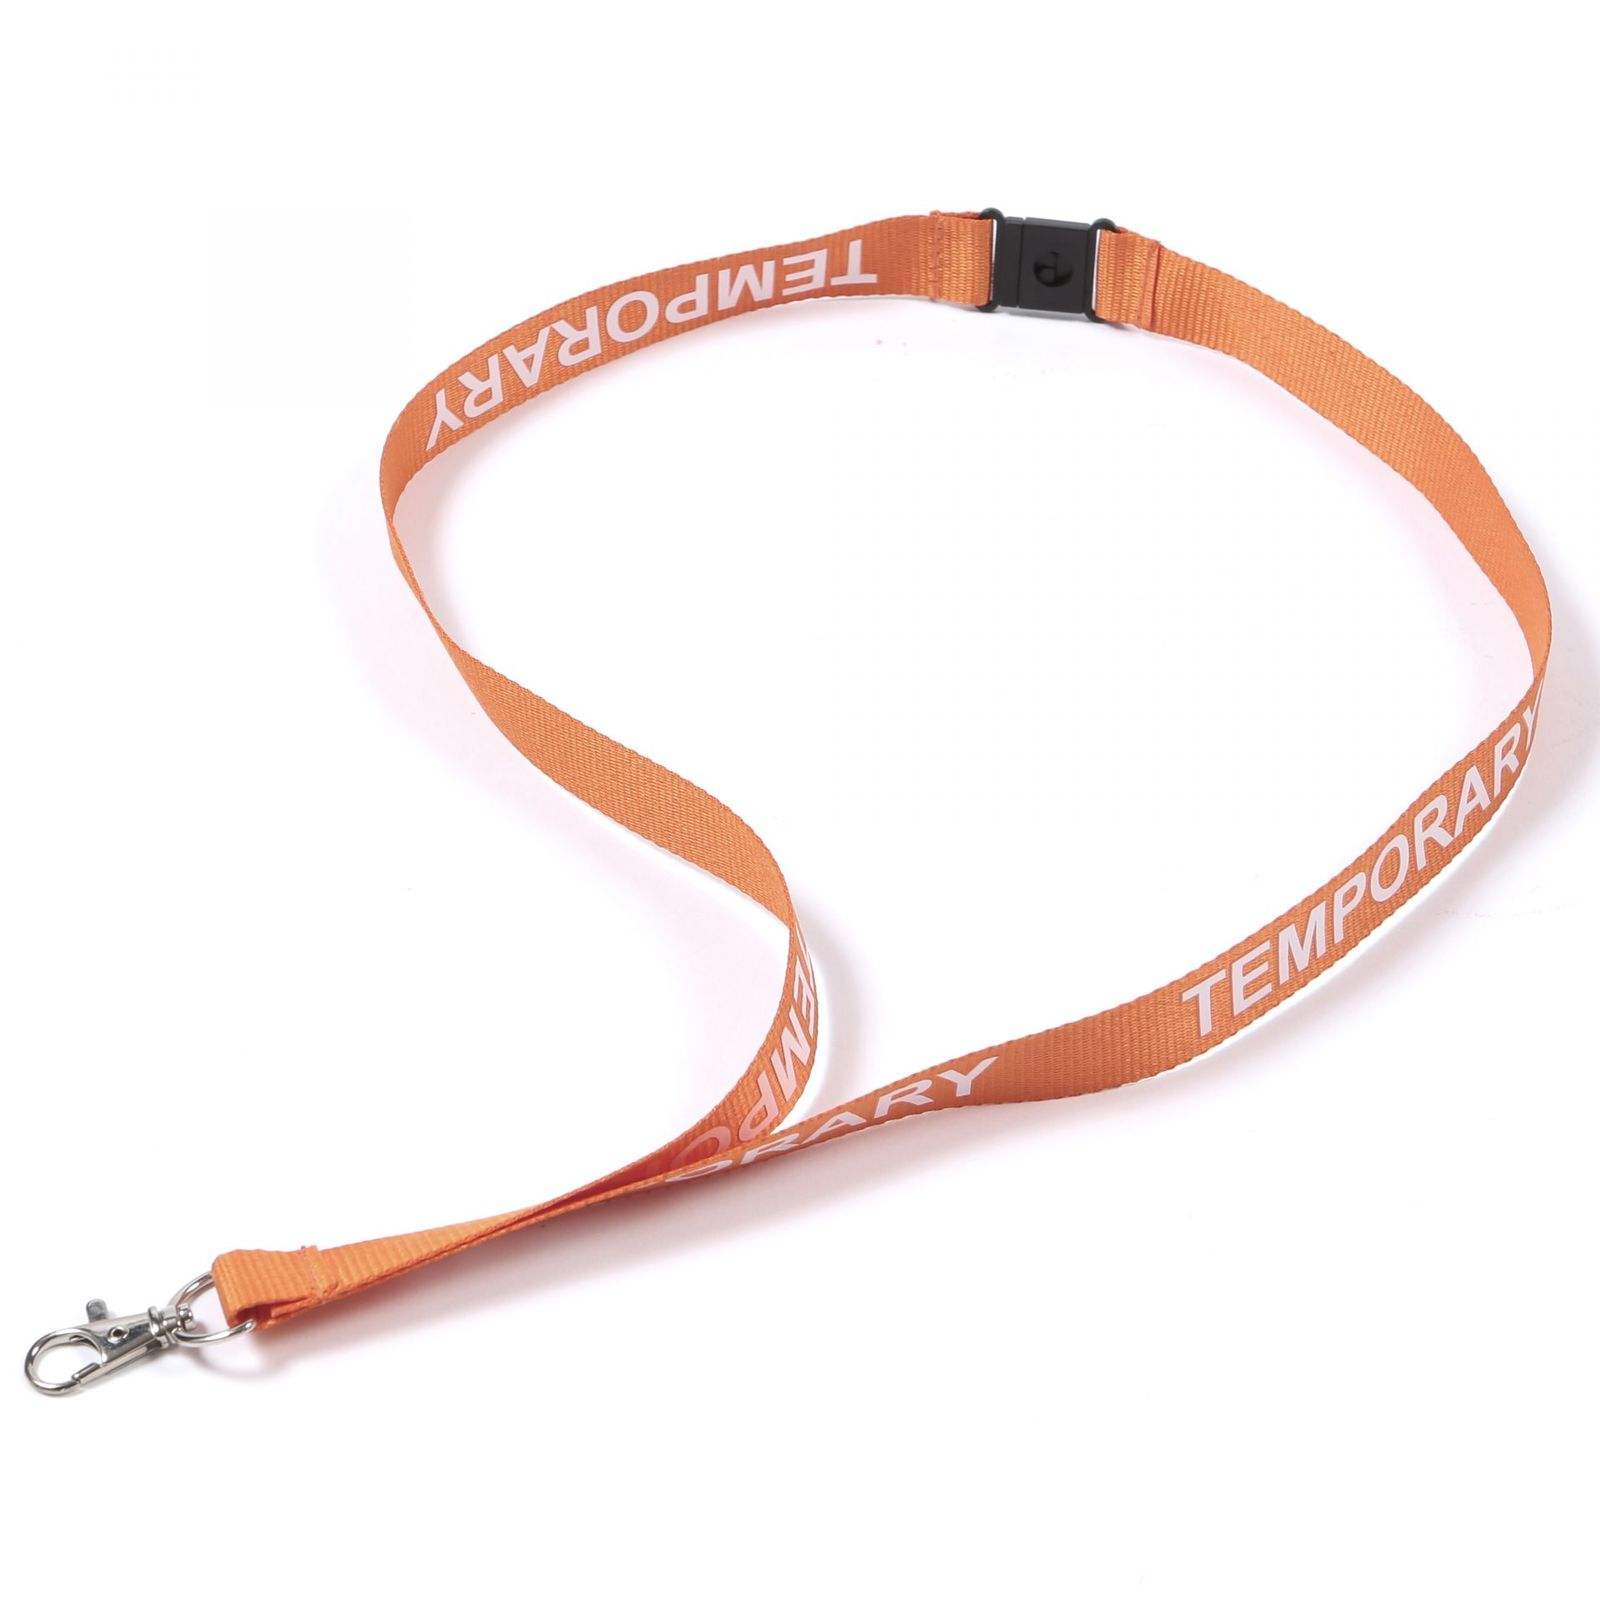 Buy Orange Temporary on Lanyards Direct Today!